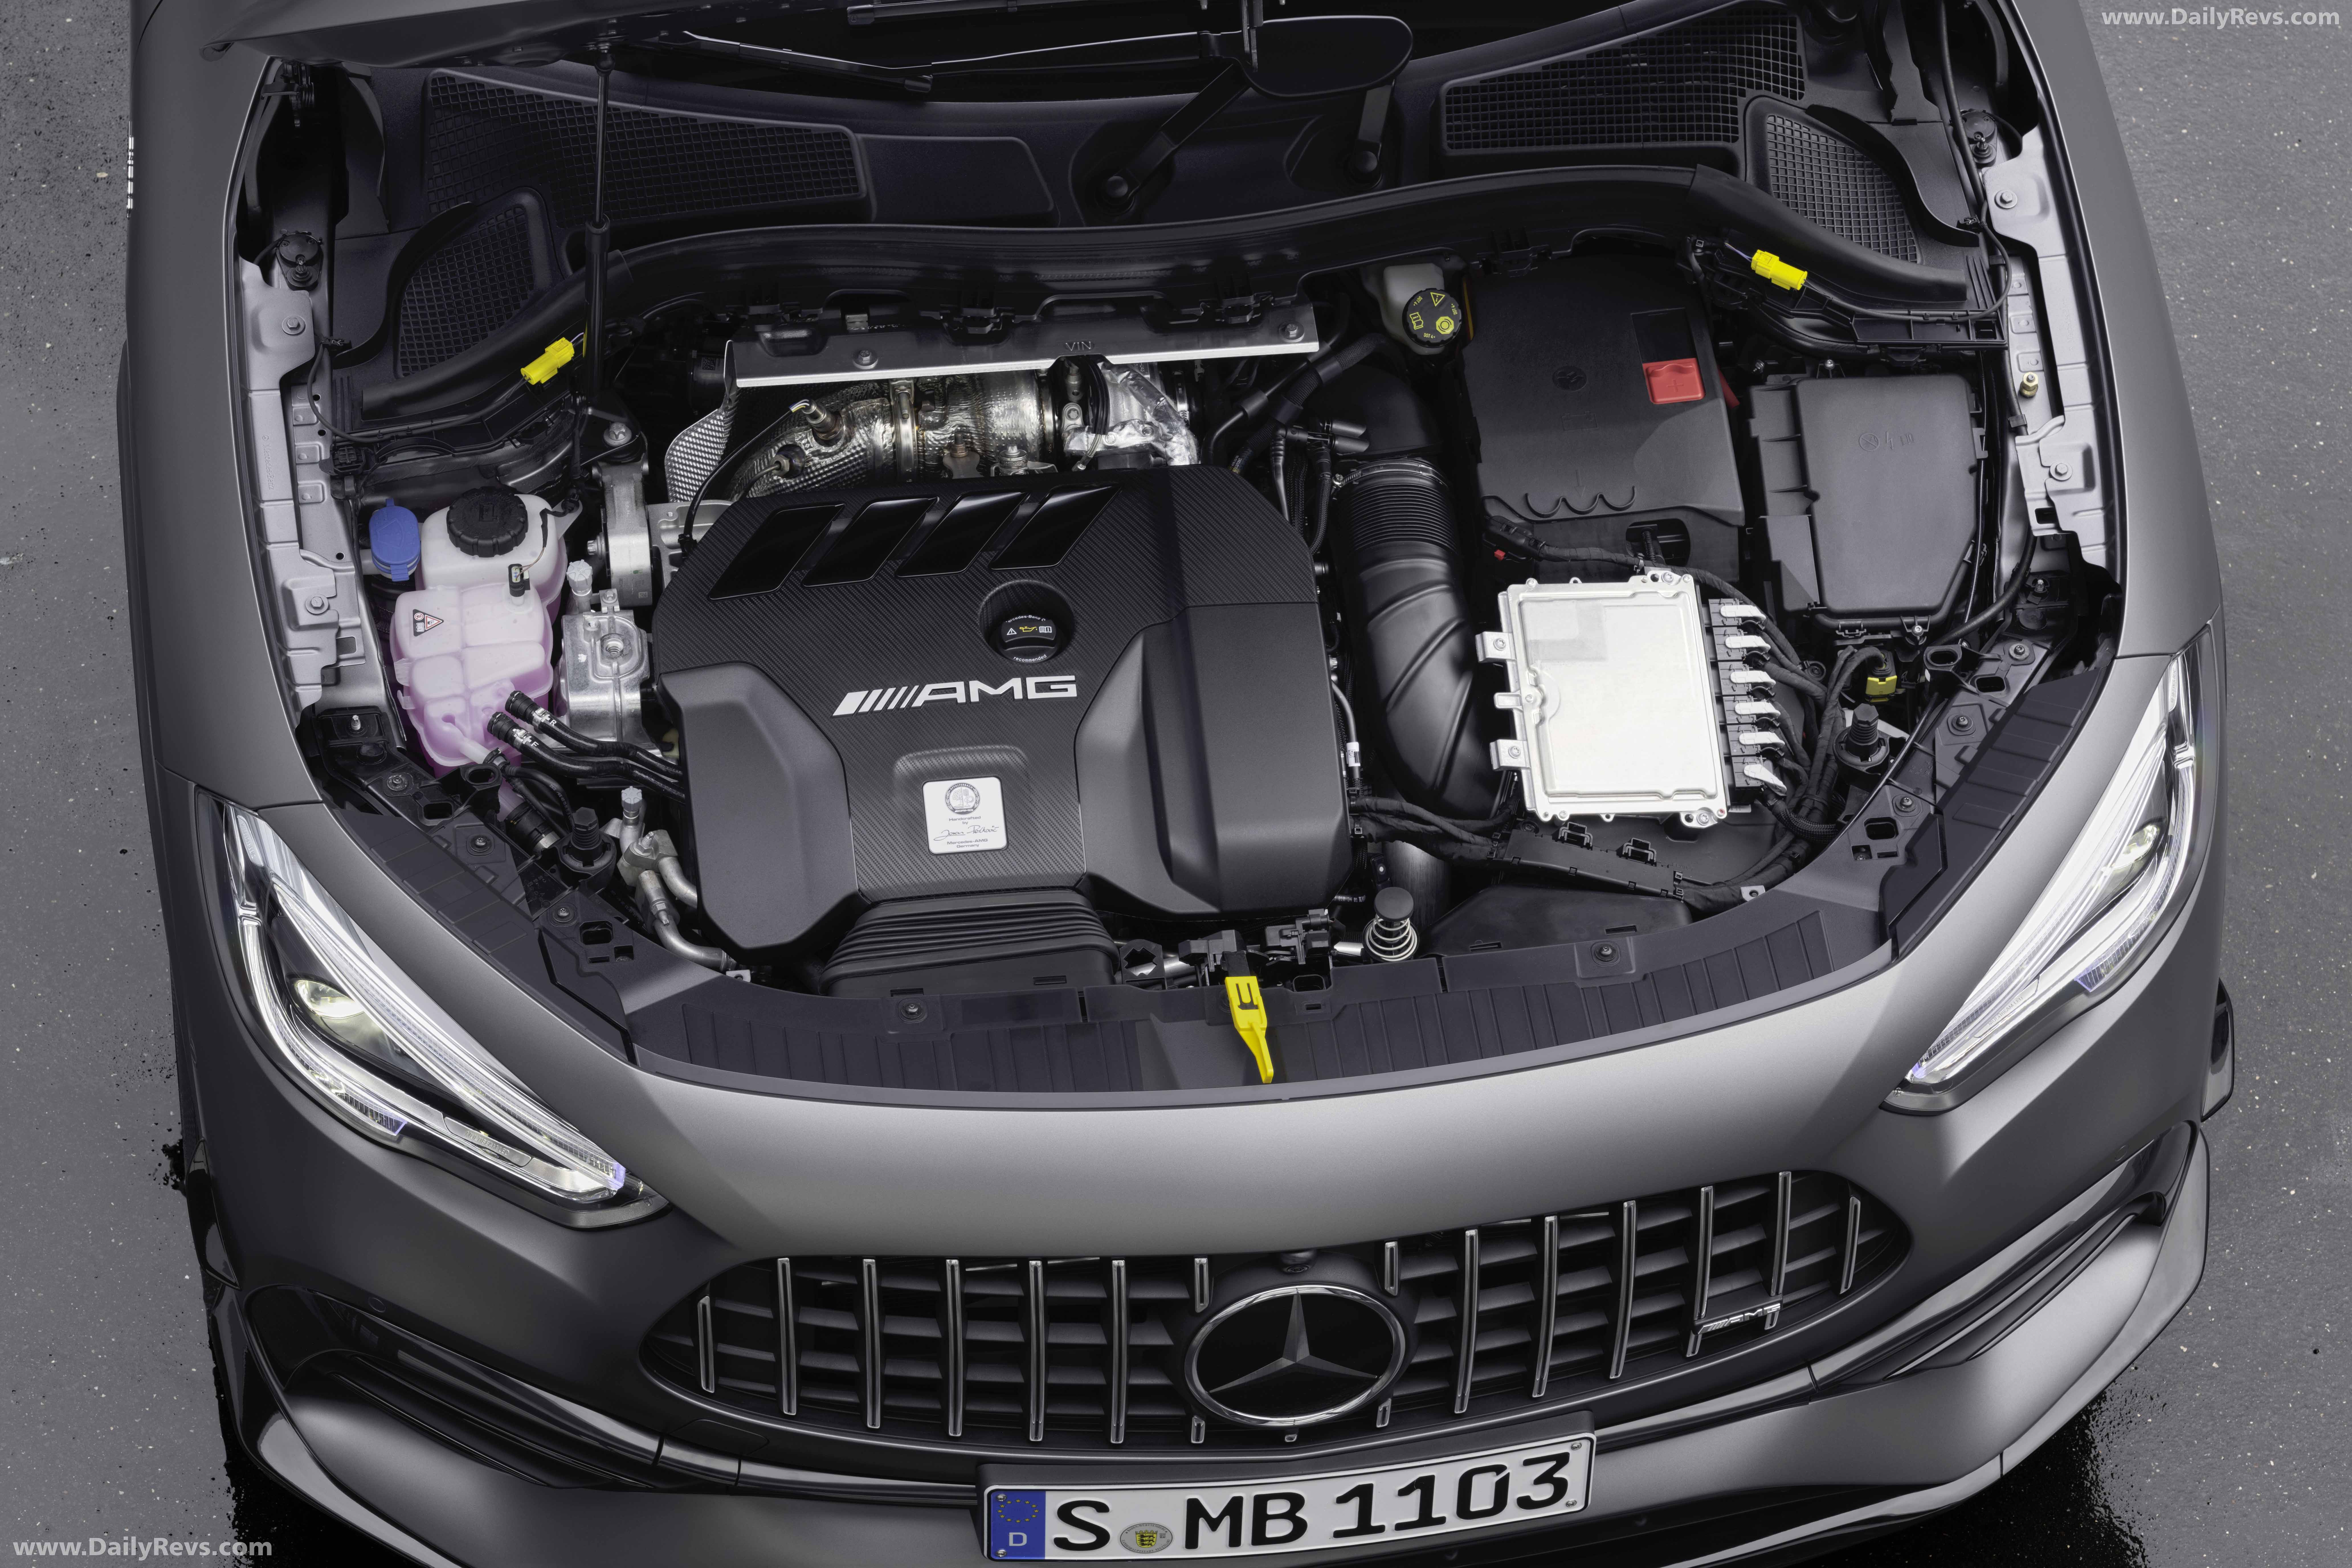 2021 Mercedes-Benz GLA45 S AMG - HD Pictures, Videos ...